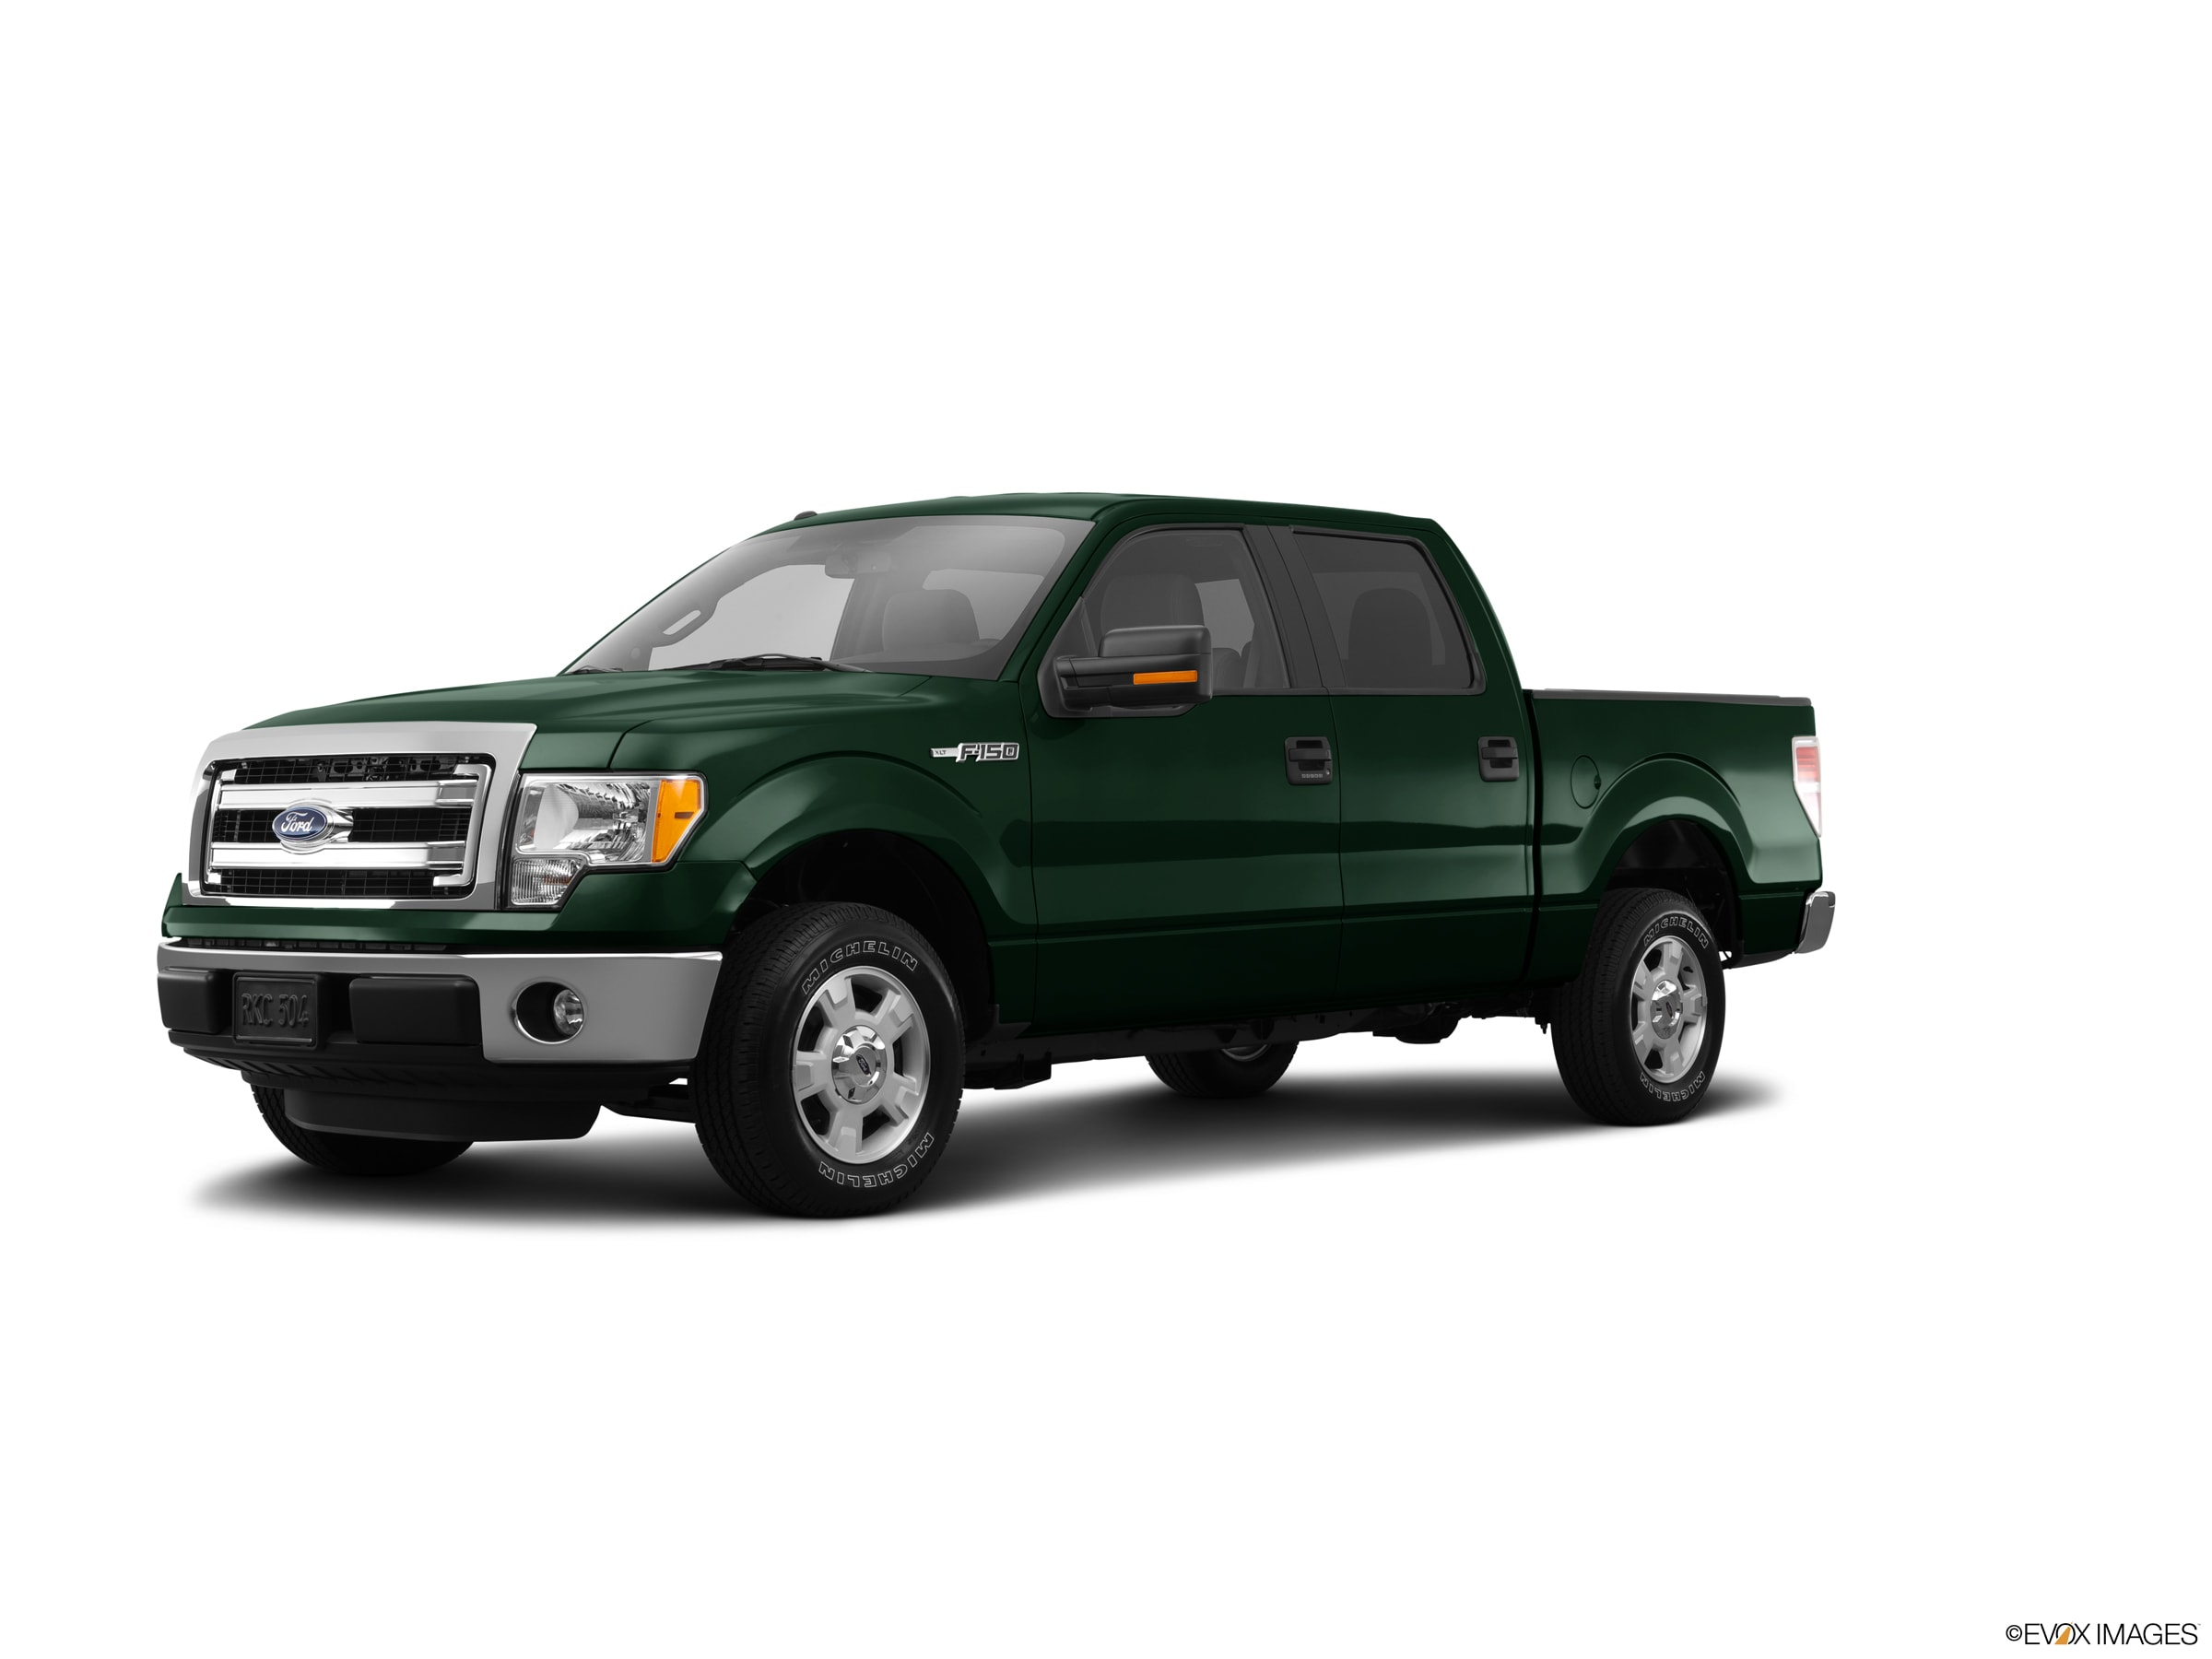 Used 2014 Ford F-150 XLT with VIN 1FTFW1ET2EKD06422 for sale in Branch, Minnesota